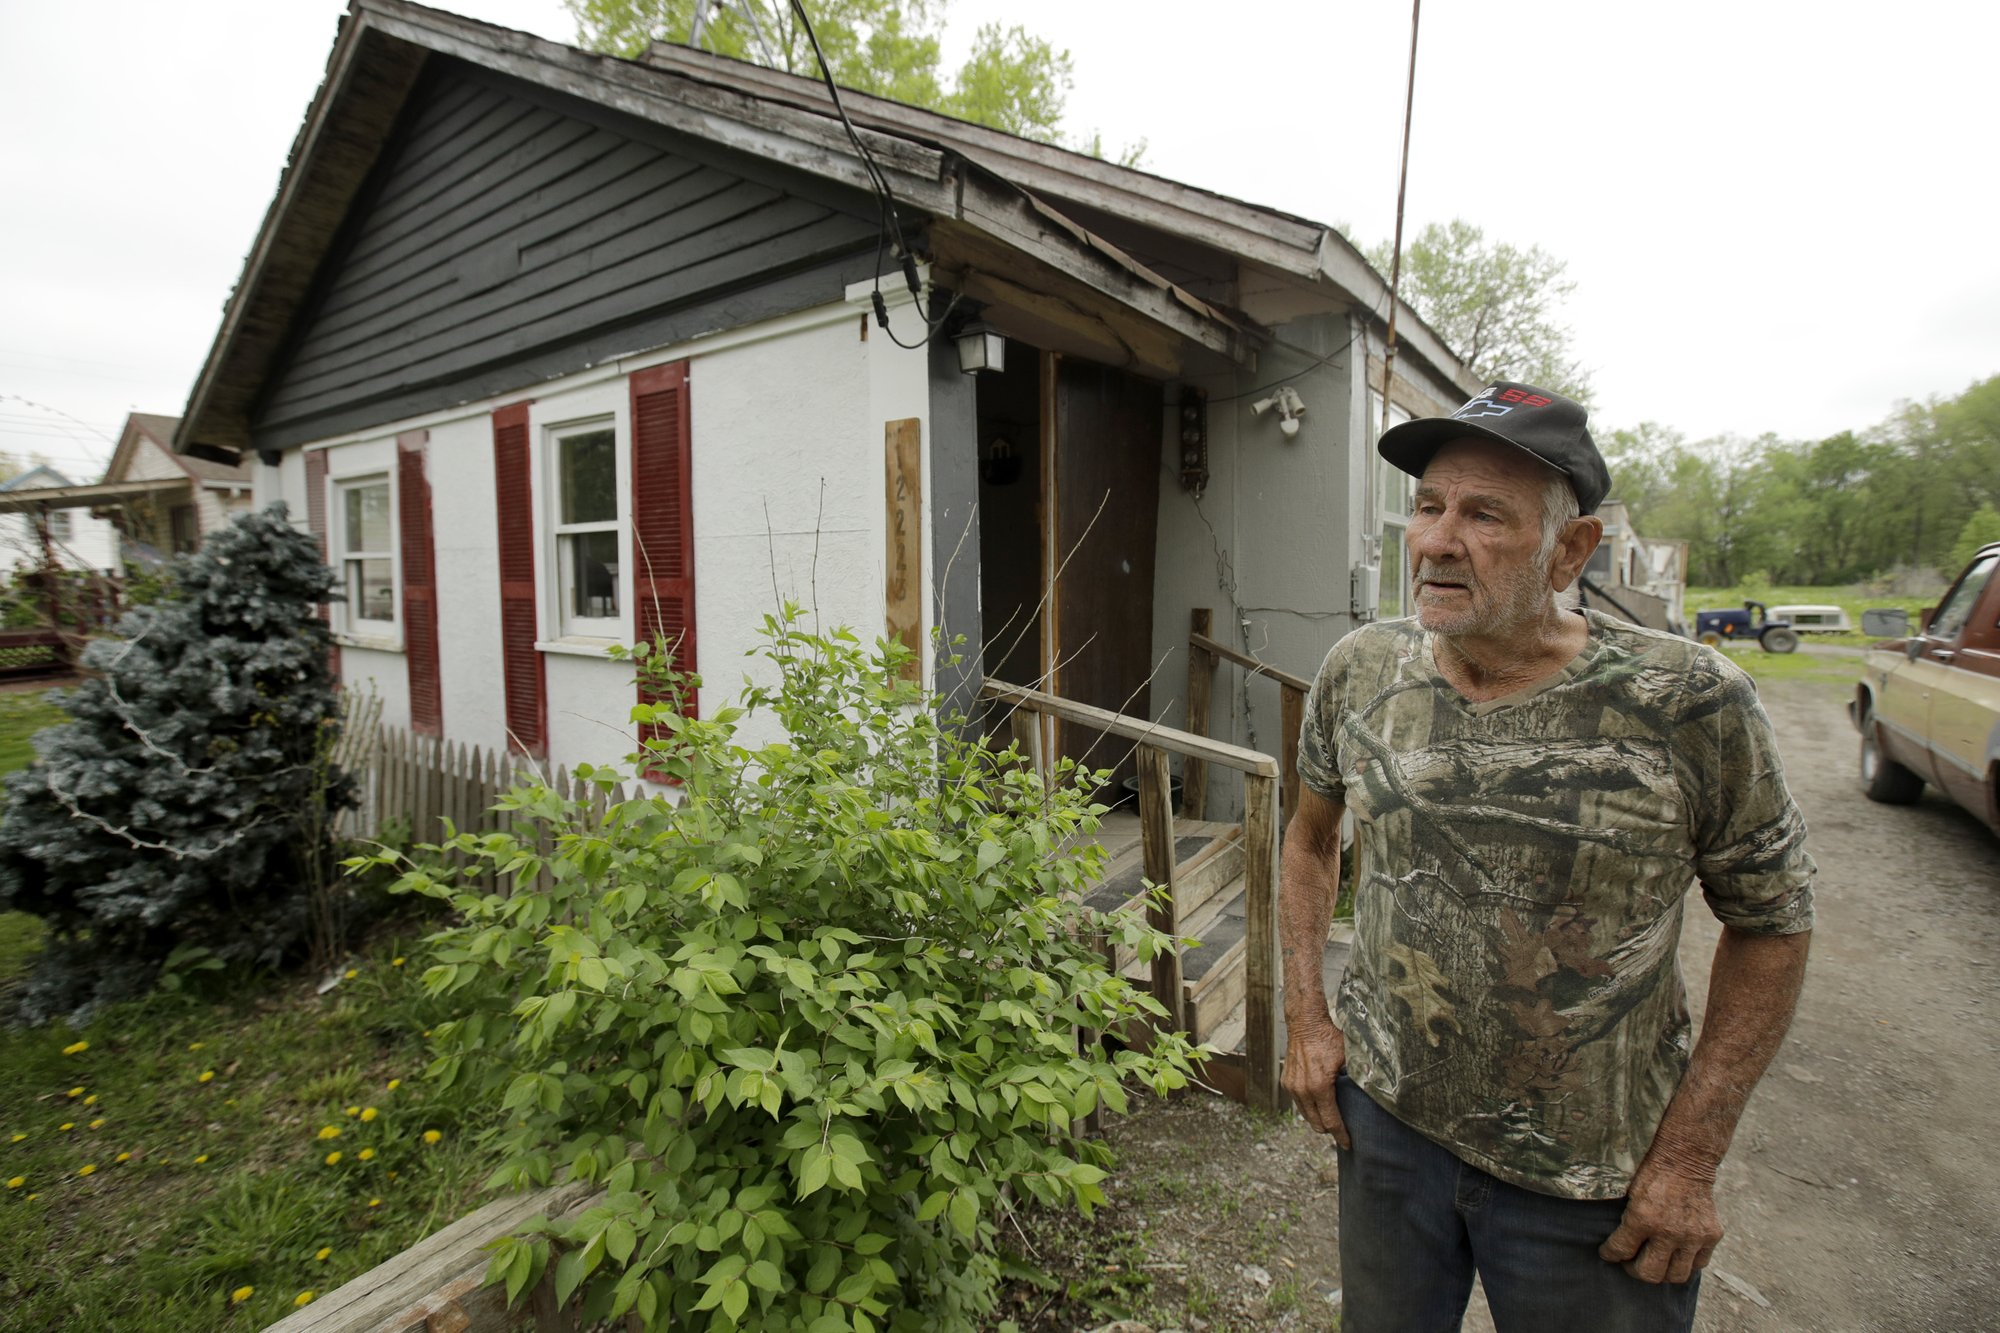 Cost of flood buyouts has been rising over past decade